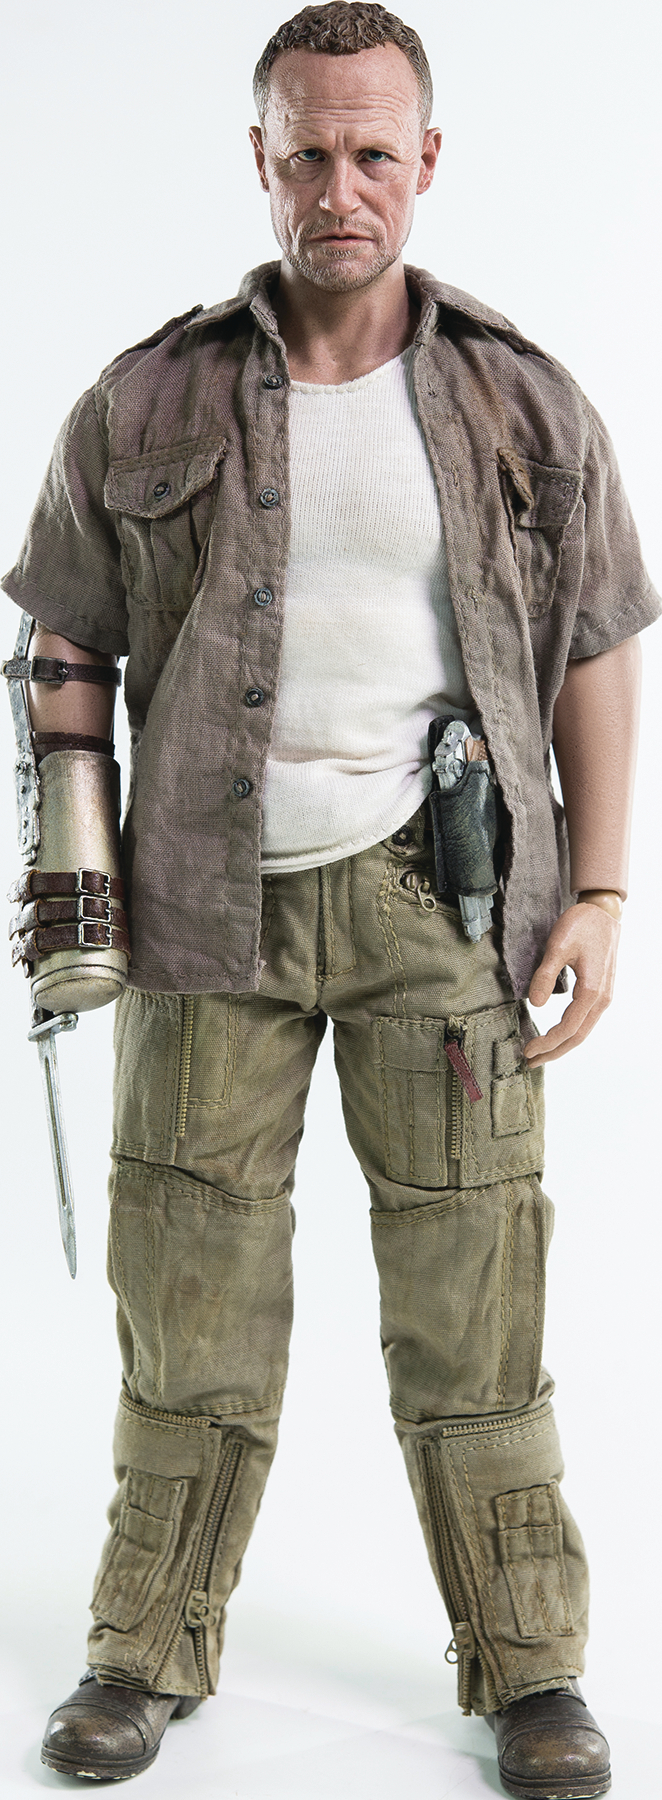 WALKING DEAD MERLE DIXON 1/6 SCALE FIG